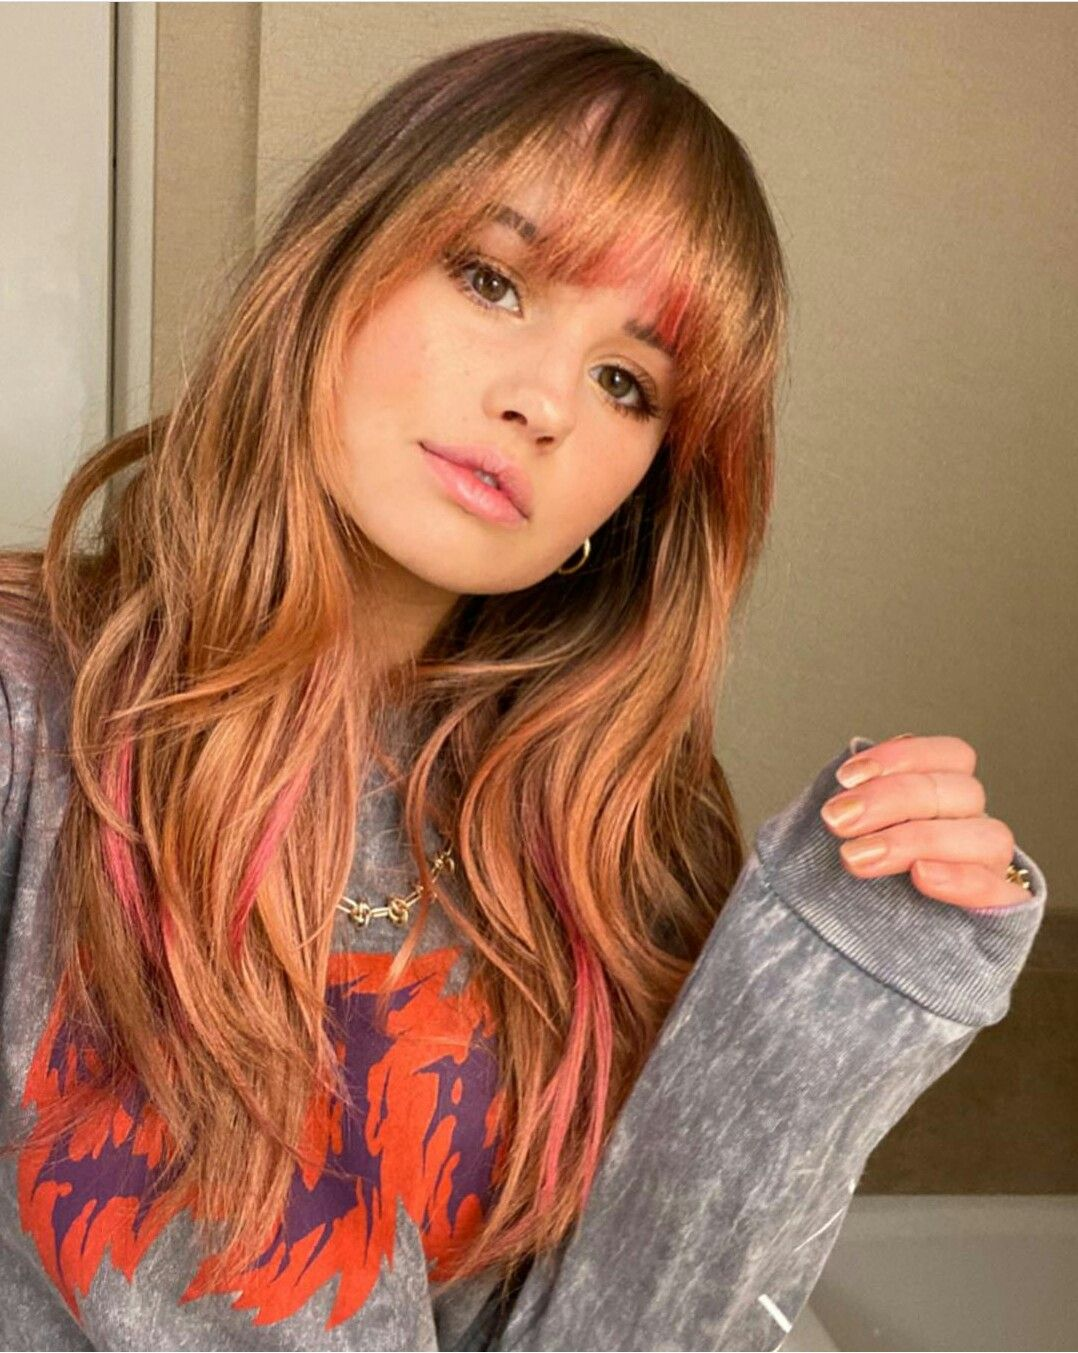 Pin By Maria Jose On Debby Ryan In 2020 How To Style Bangs Debby Ryan Silvery Blonde Hair